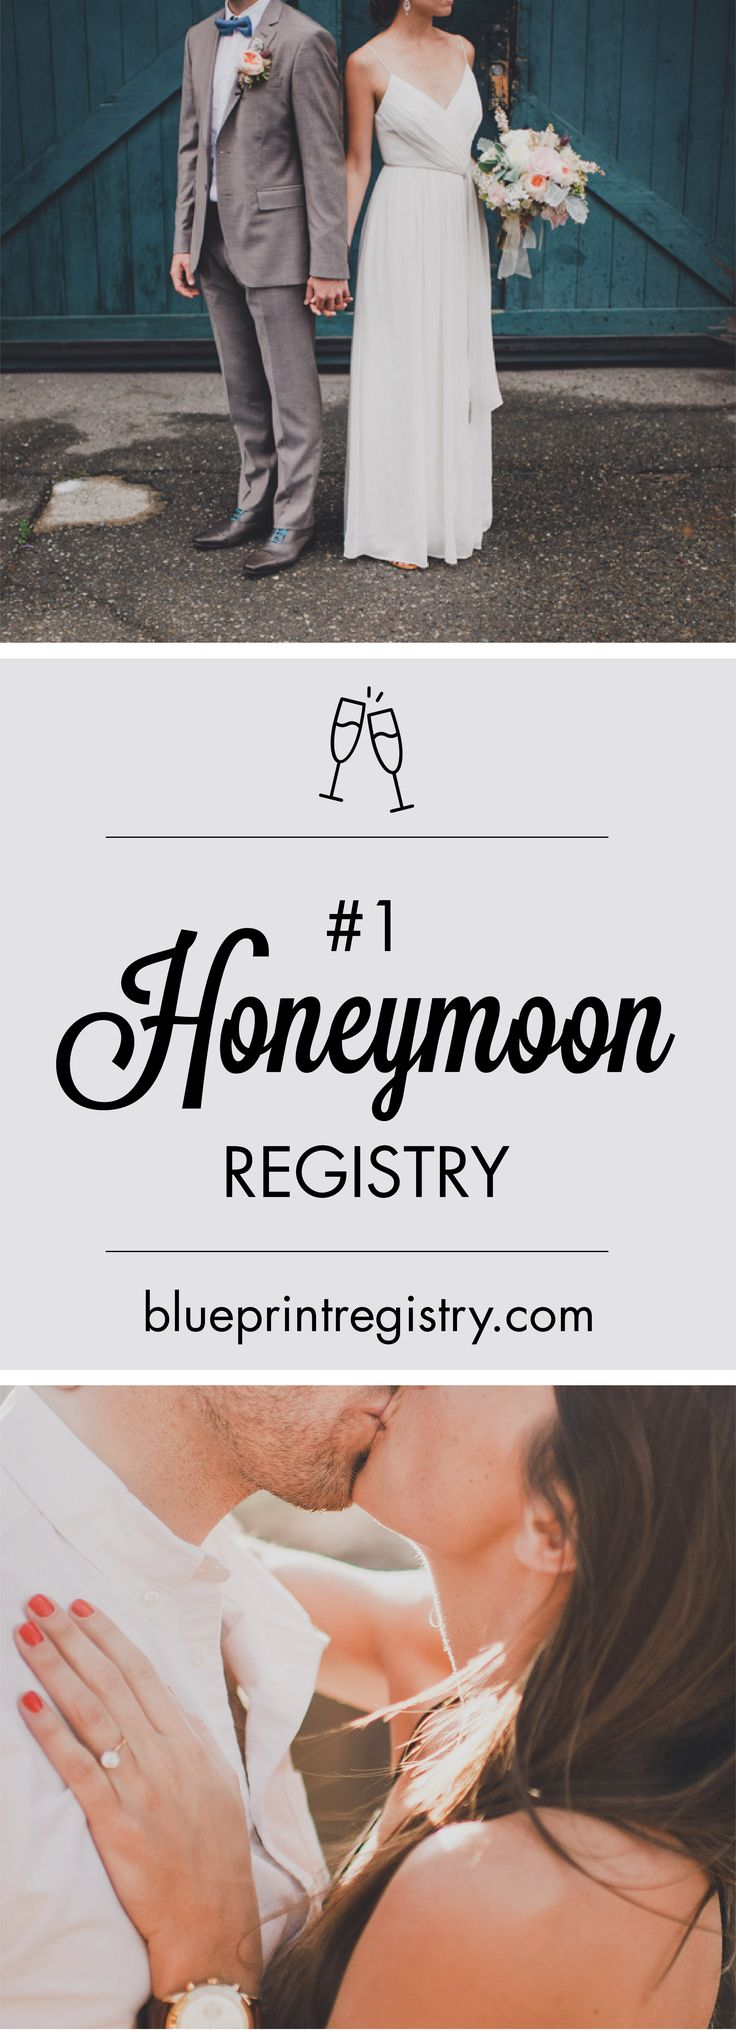 54 best blueprint wedding registry images on pinterest honeymoon start your honeymoon fund with blueprint registry malvernweather Image collections